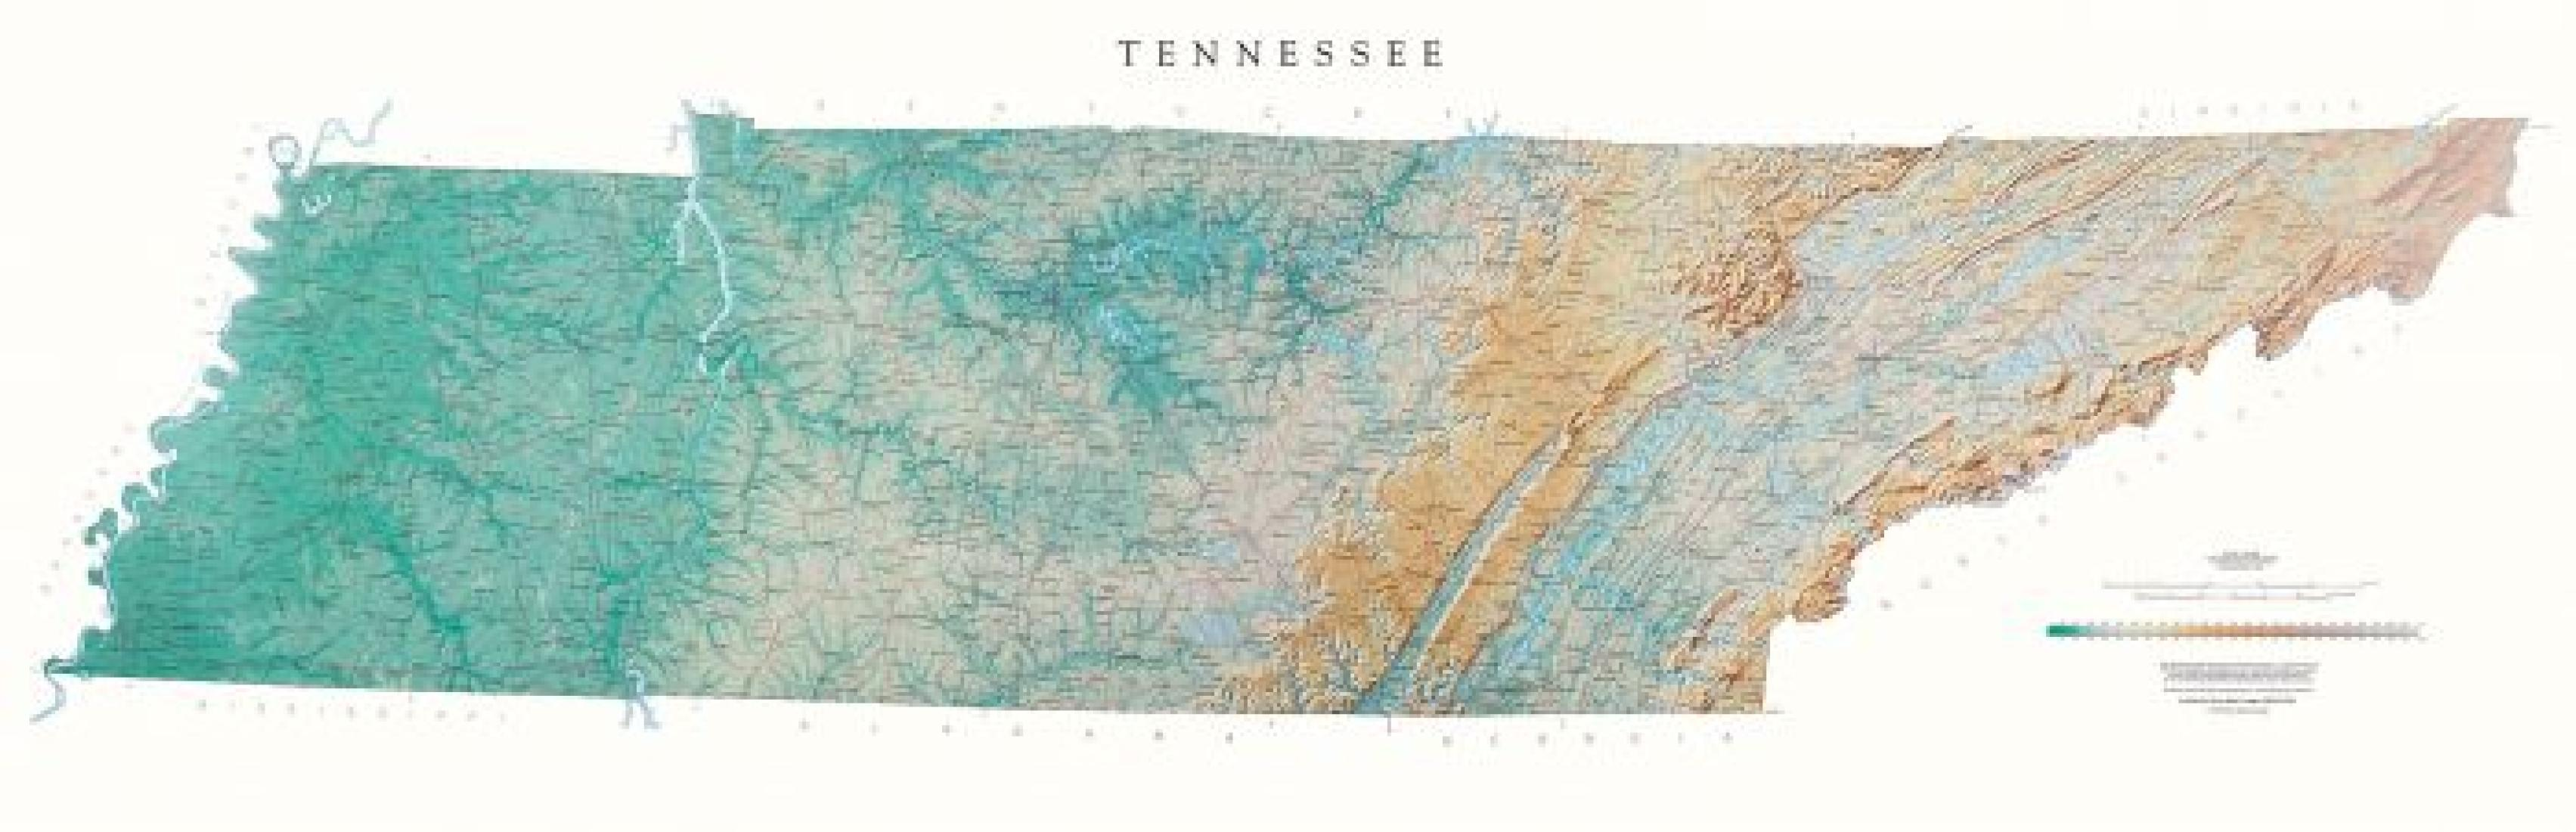 Tennessee - Physical, Laminated Wall Map by Raven Maps on